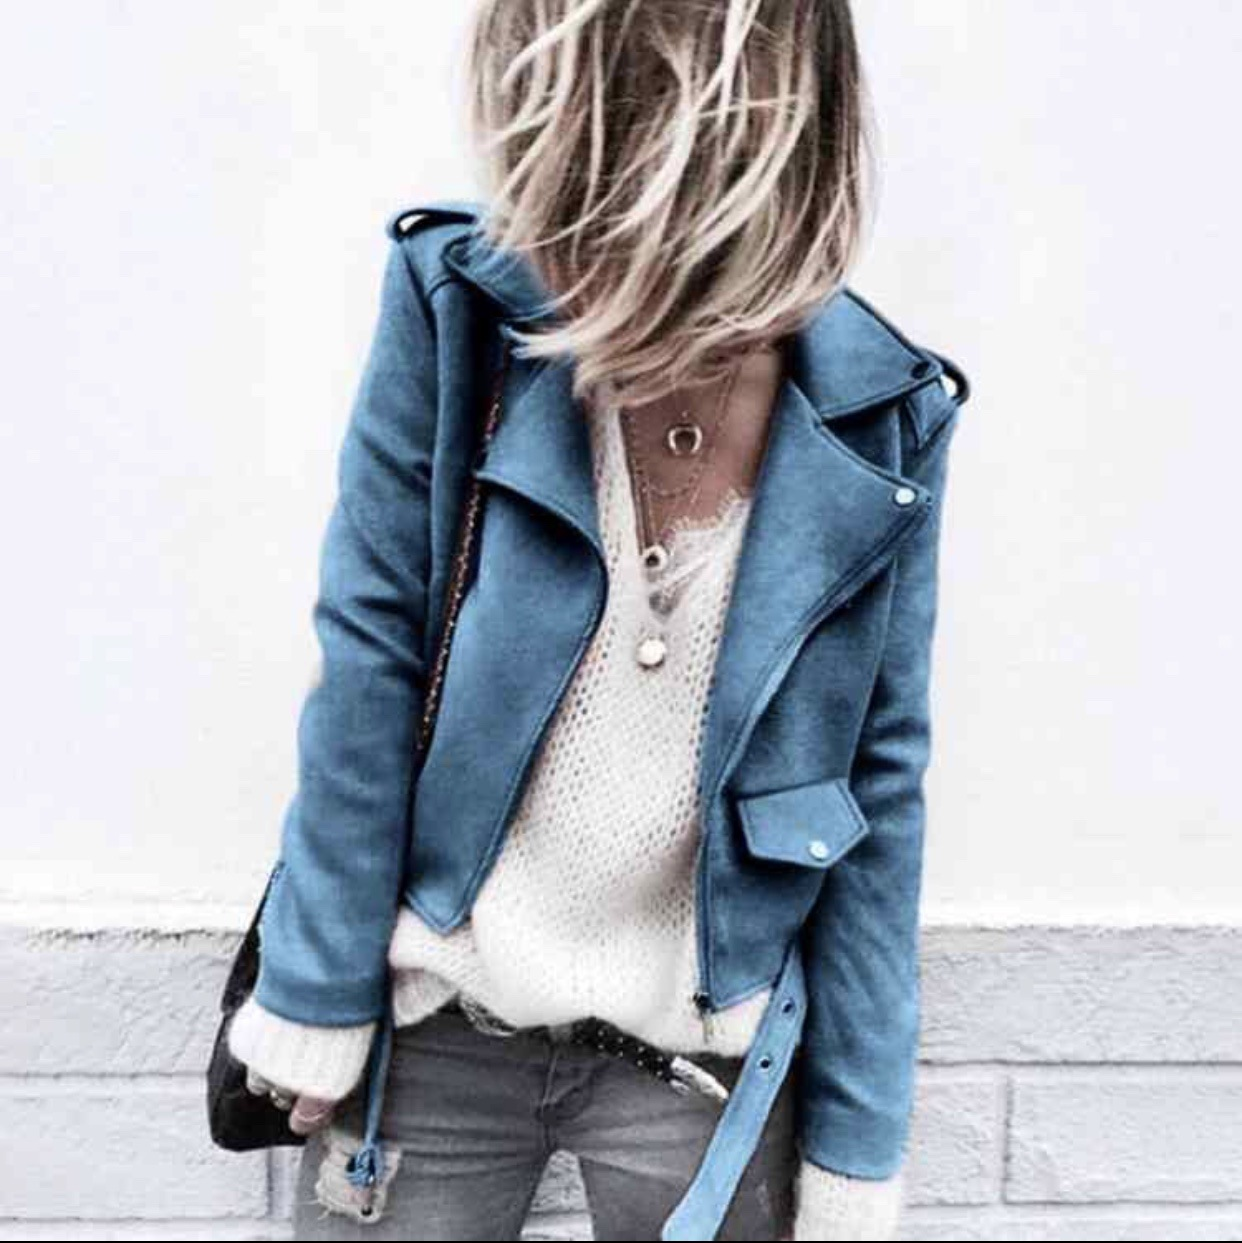 Autumn Women Jacket Casual Streetwear Long-sleeved Suede Leather Tops Coat New Bomber Jacket Winter Short Clothing Plus Size 5XL